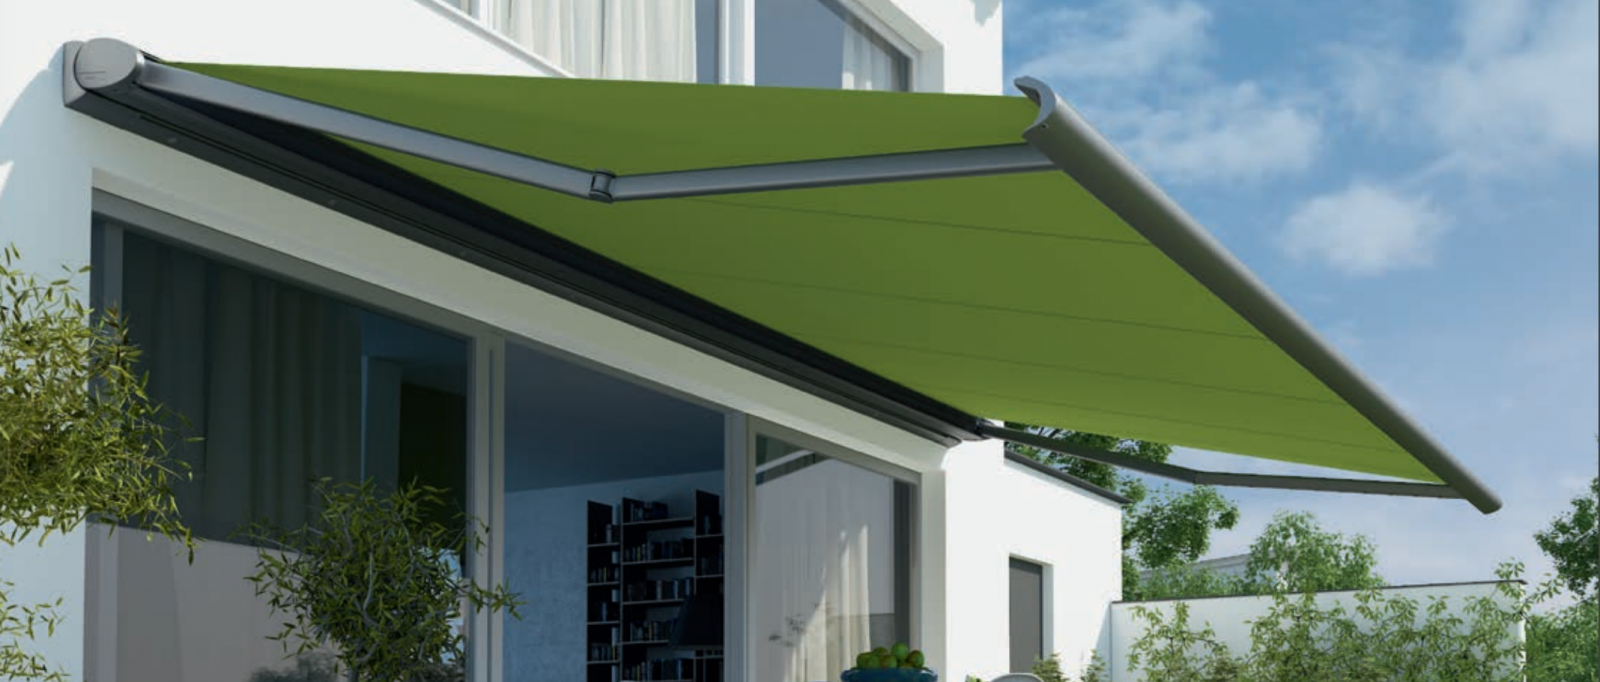 Weinor Awning - Green Fabric - Awningsouth